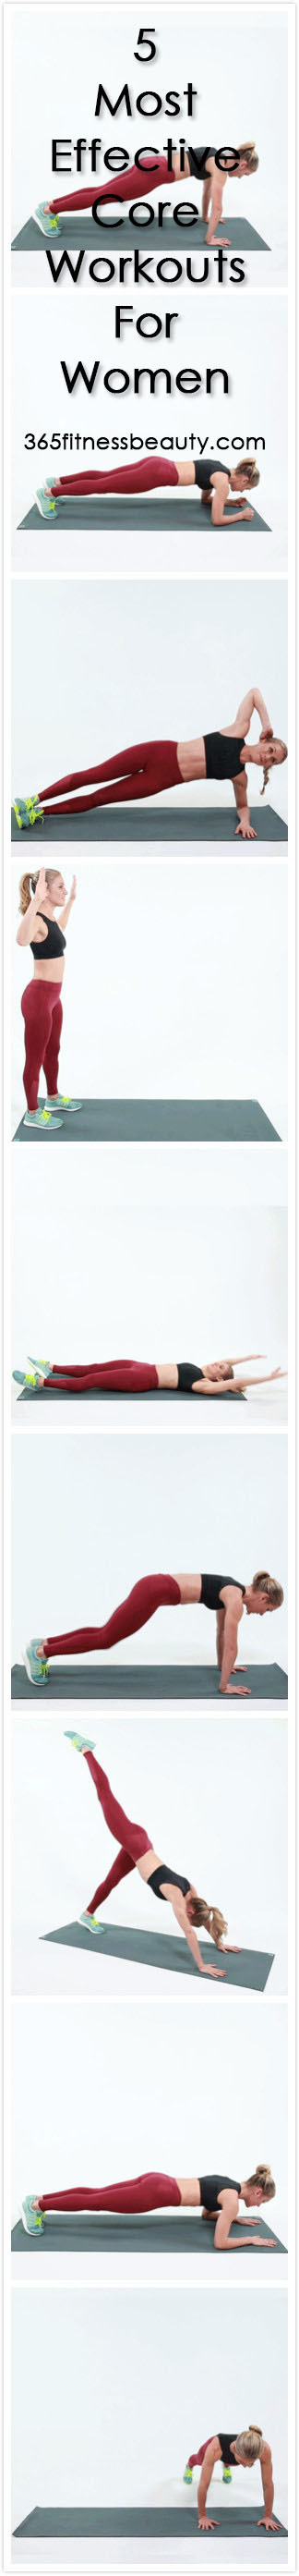 5-most-effective-core-workouts-for-women